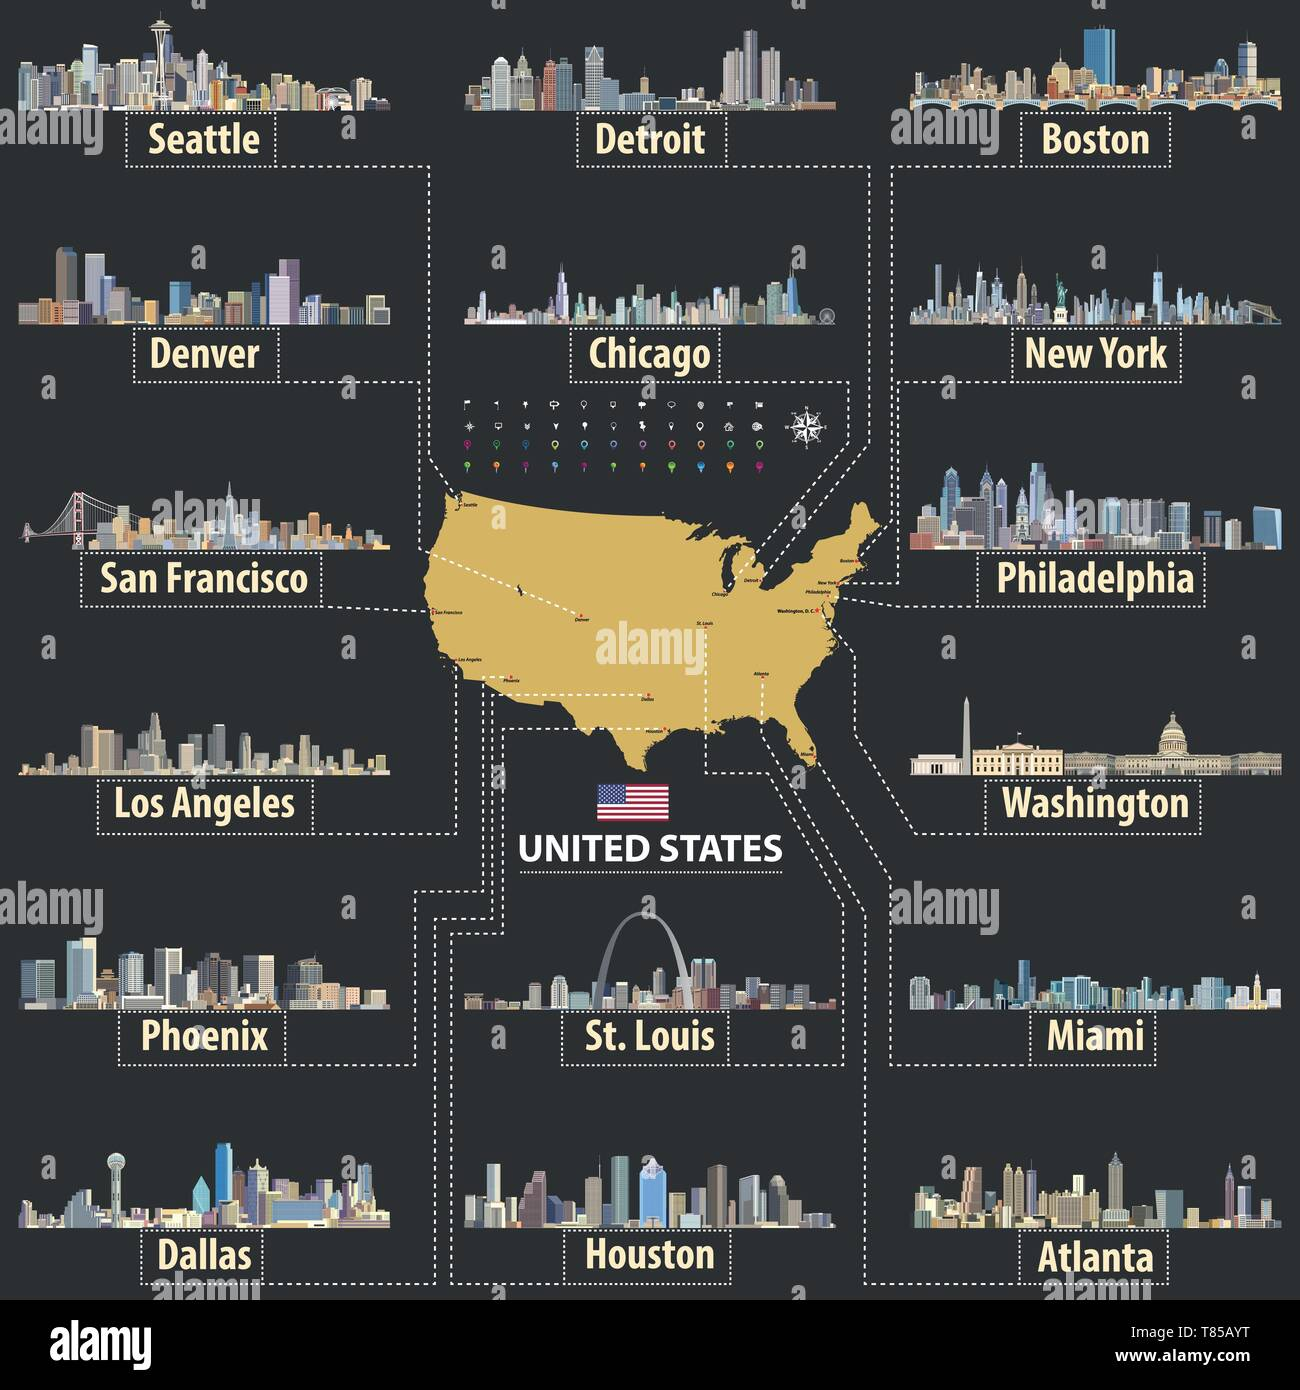 vector map of United States of America with largest cities' skylines - Stock Vector